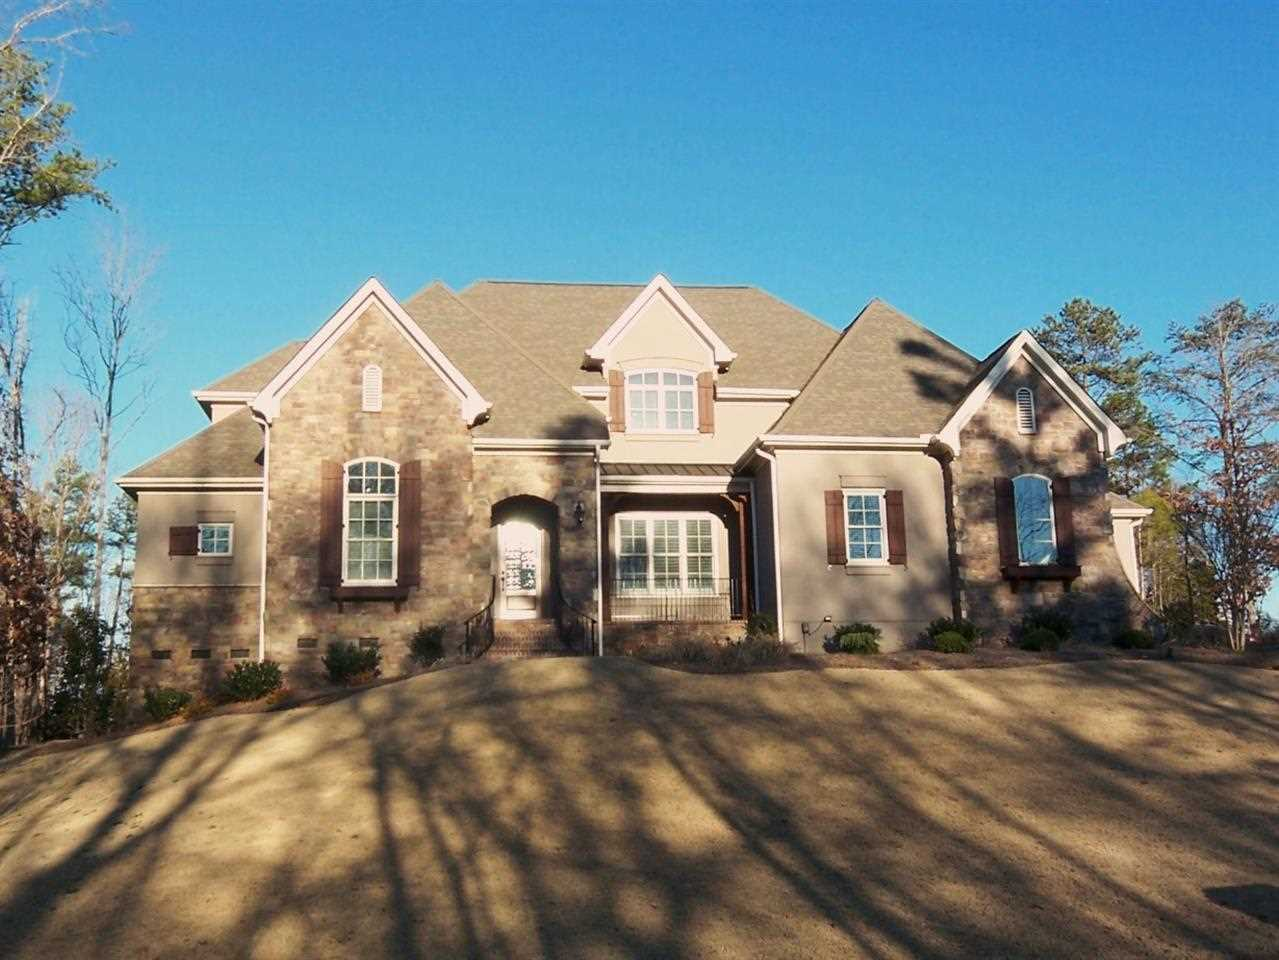 Single Family Home for Sale, ListingId:27185950, location: 653 Bannerman Ln Ft Mill 29715